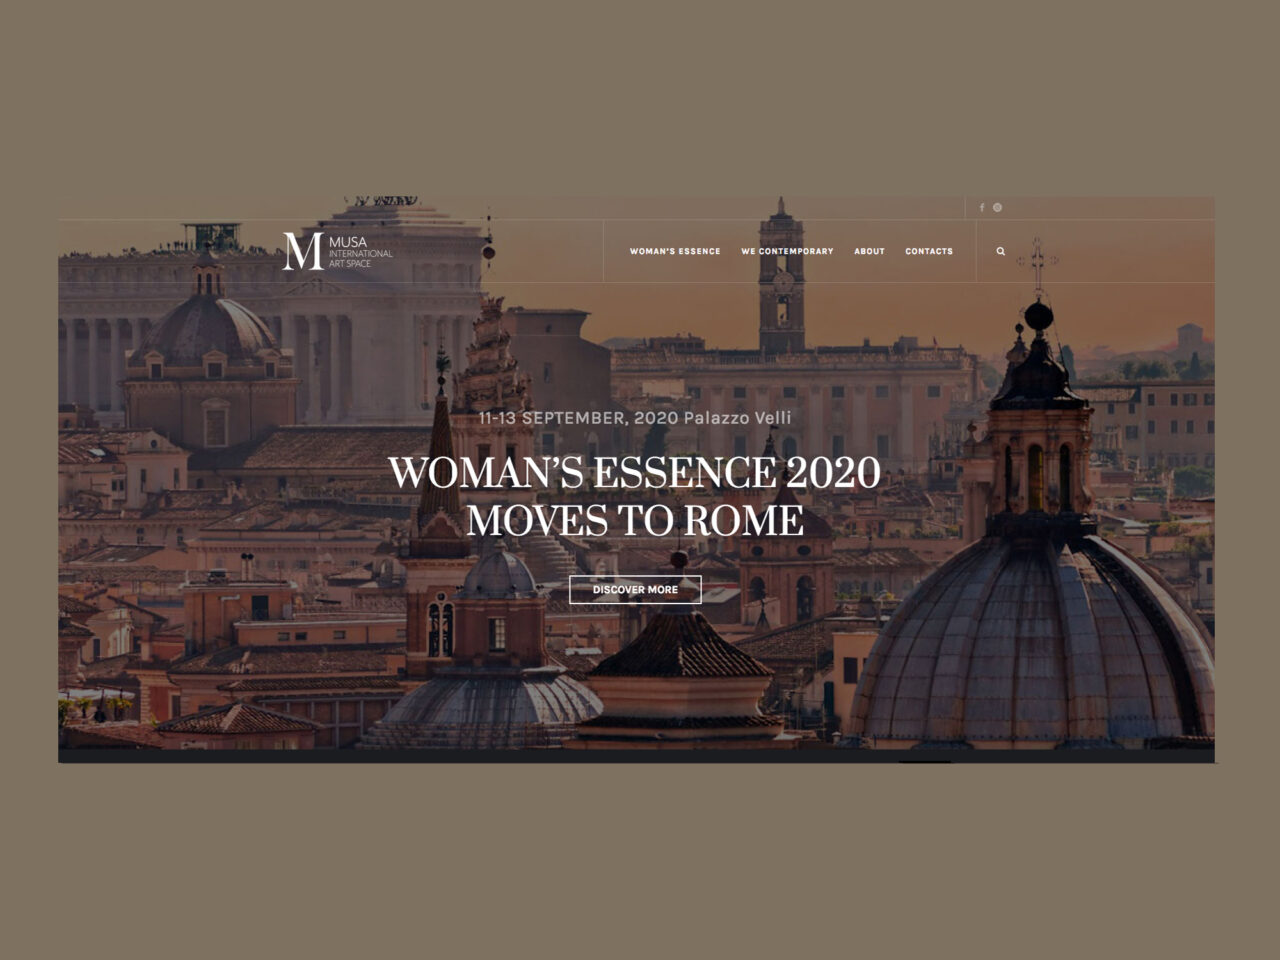 MUSA International Art Space, WOMAN'S ESSENCE SHOW 2020 in Collaboration with UNESCO image